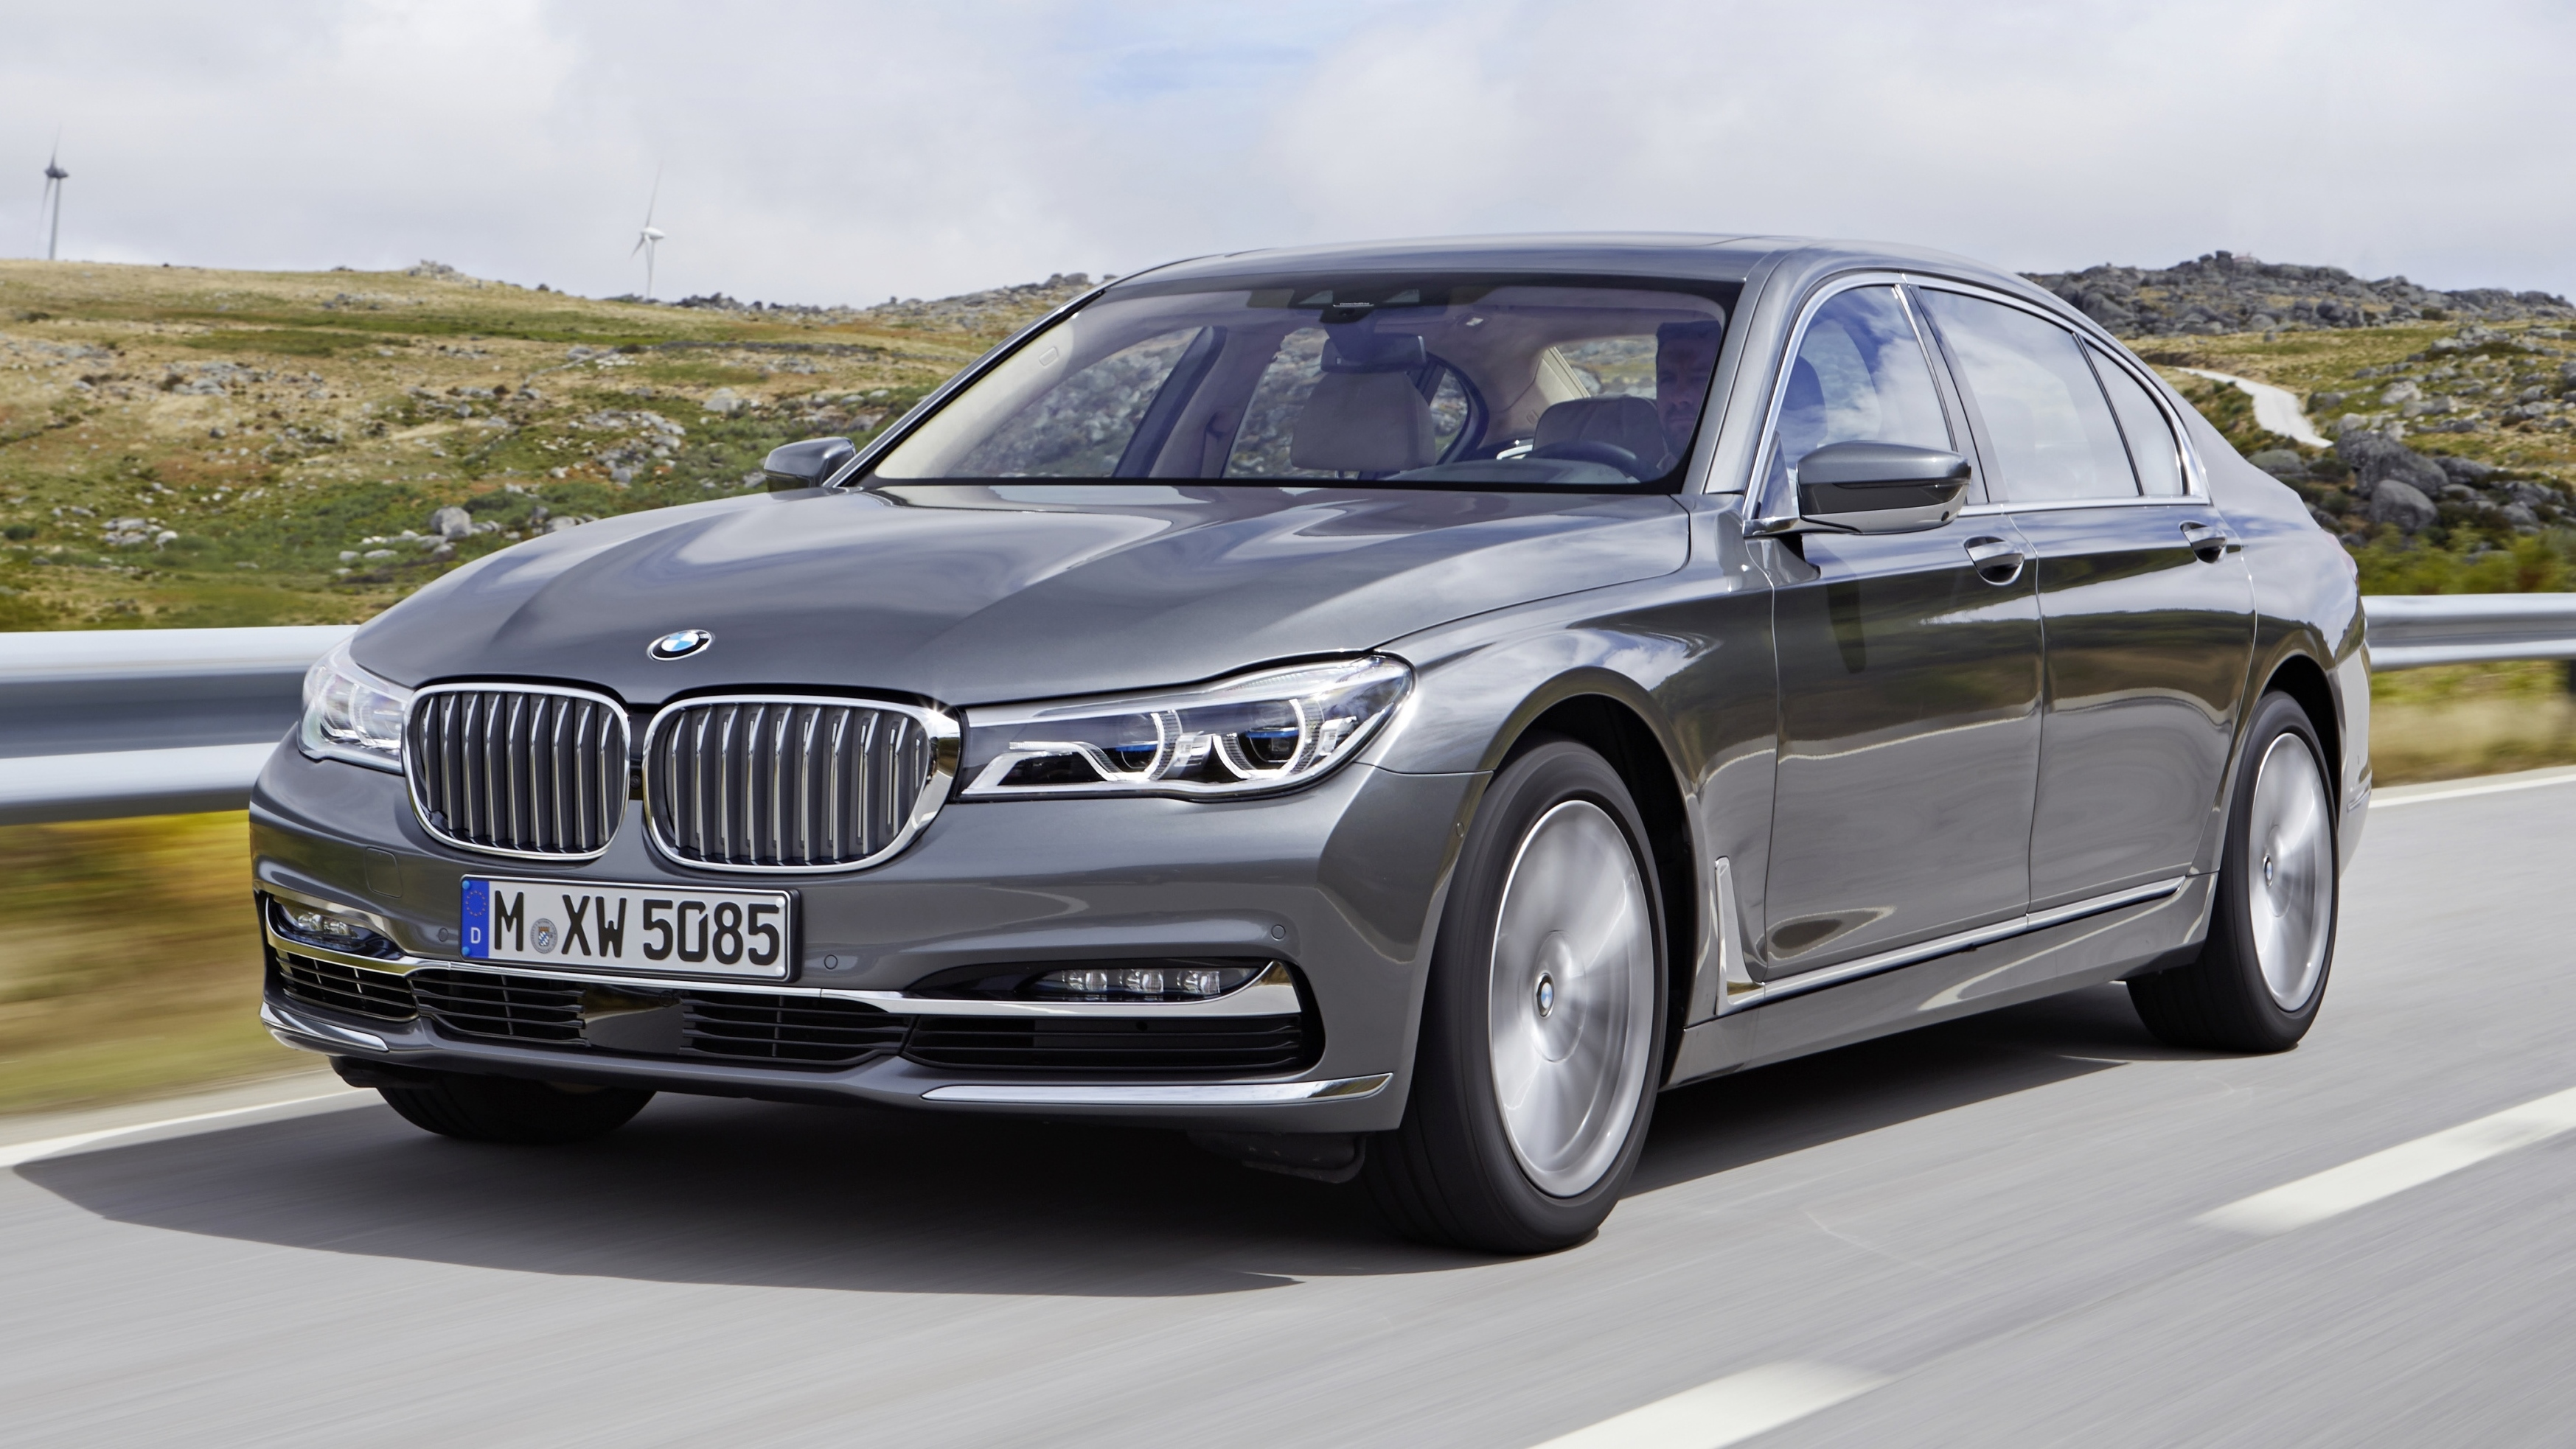 Prices Of All Bmw Cars To Rise From April 2017